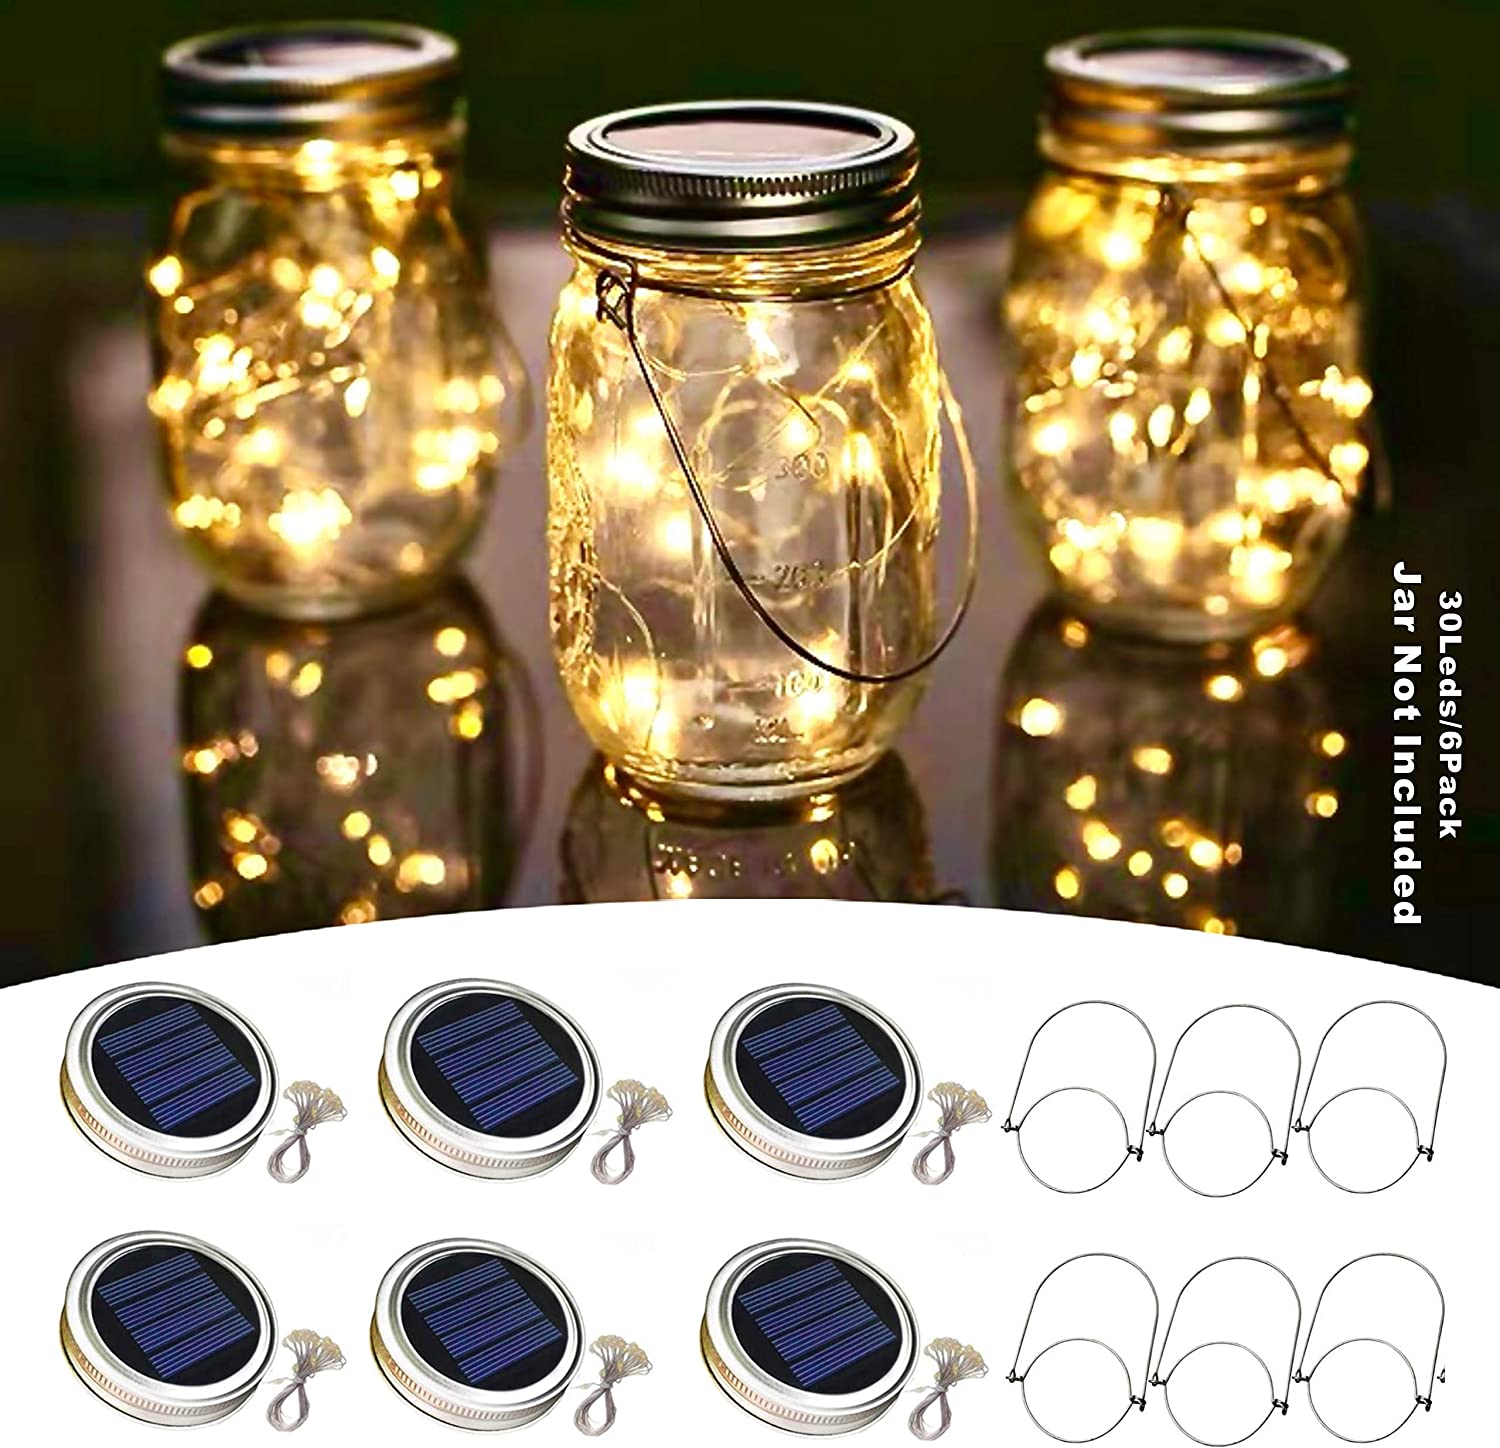 30 Led Solar Mason Jar Lid Lights,6 Pack Waterproof String Fairy Star Firefly Jar Lids Lights with 6 Hangers, Best for Mason Jar Decor, Patio Wedding Christmas Party Indoor/Outdoor(Warm White)